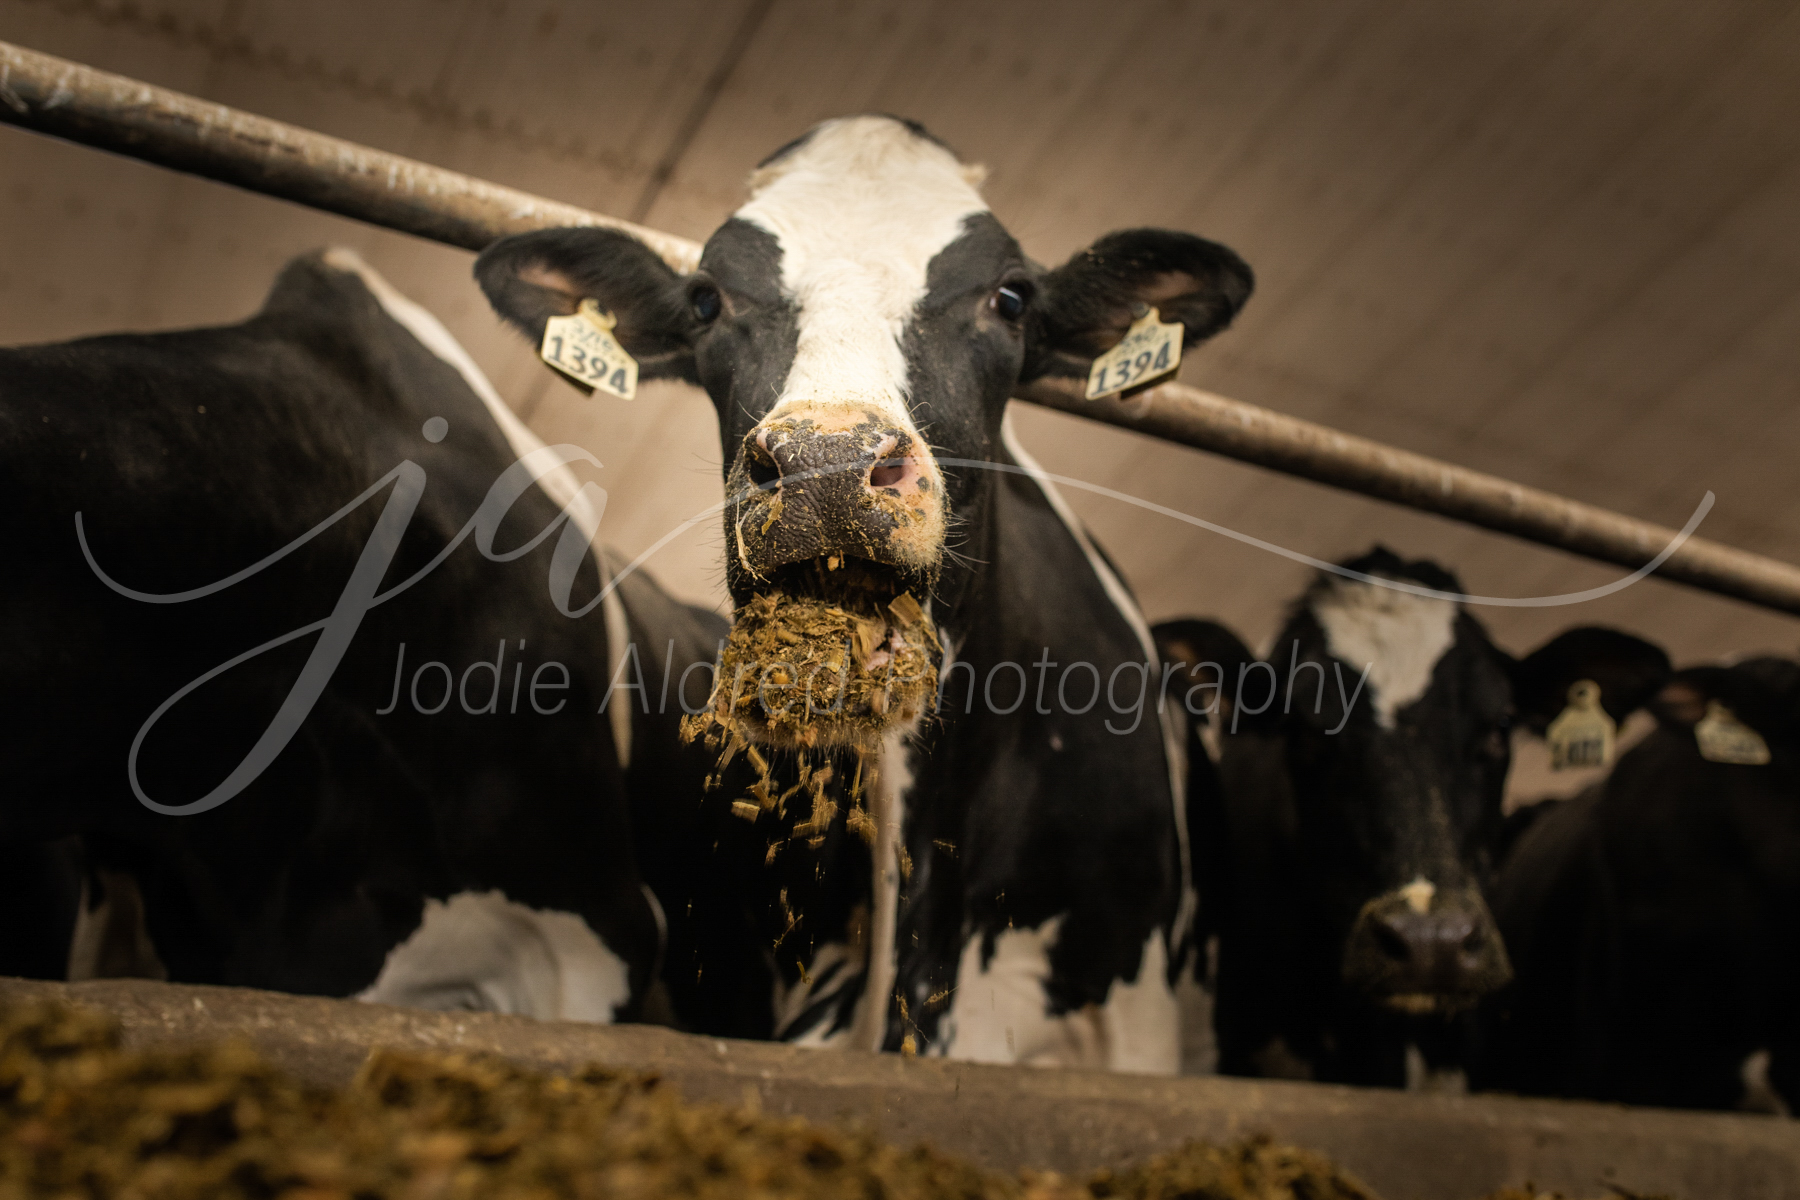 Jodie-Aldred-Photography-Ontario-Agriculture-Photographer-Farm-Outdoors-Nature-Middlesex-Elgin-Chathma-Kent-Huron-Photographer-dairy-eat-feed-barn-cow-cattle.jpg